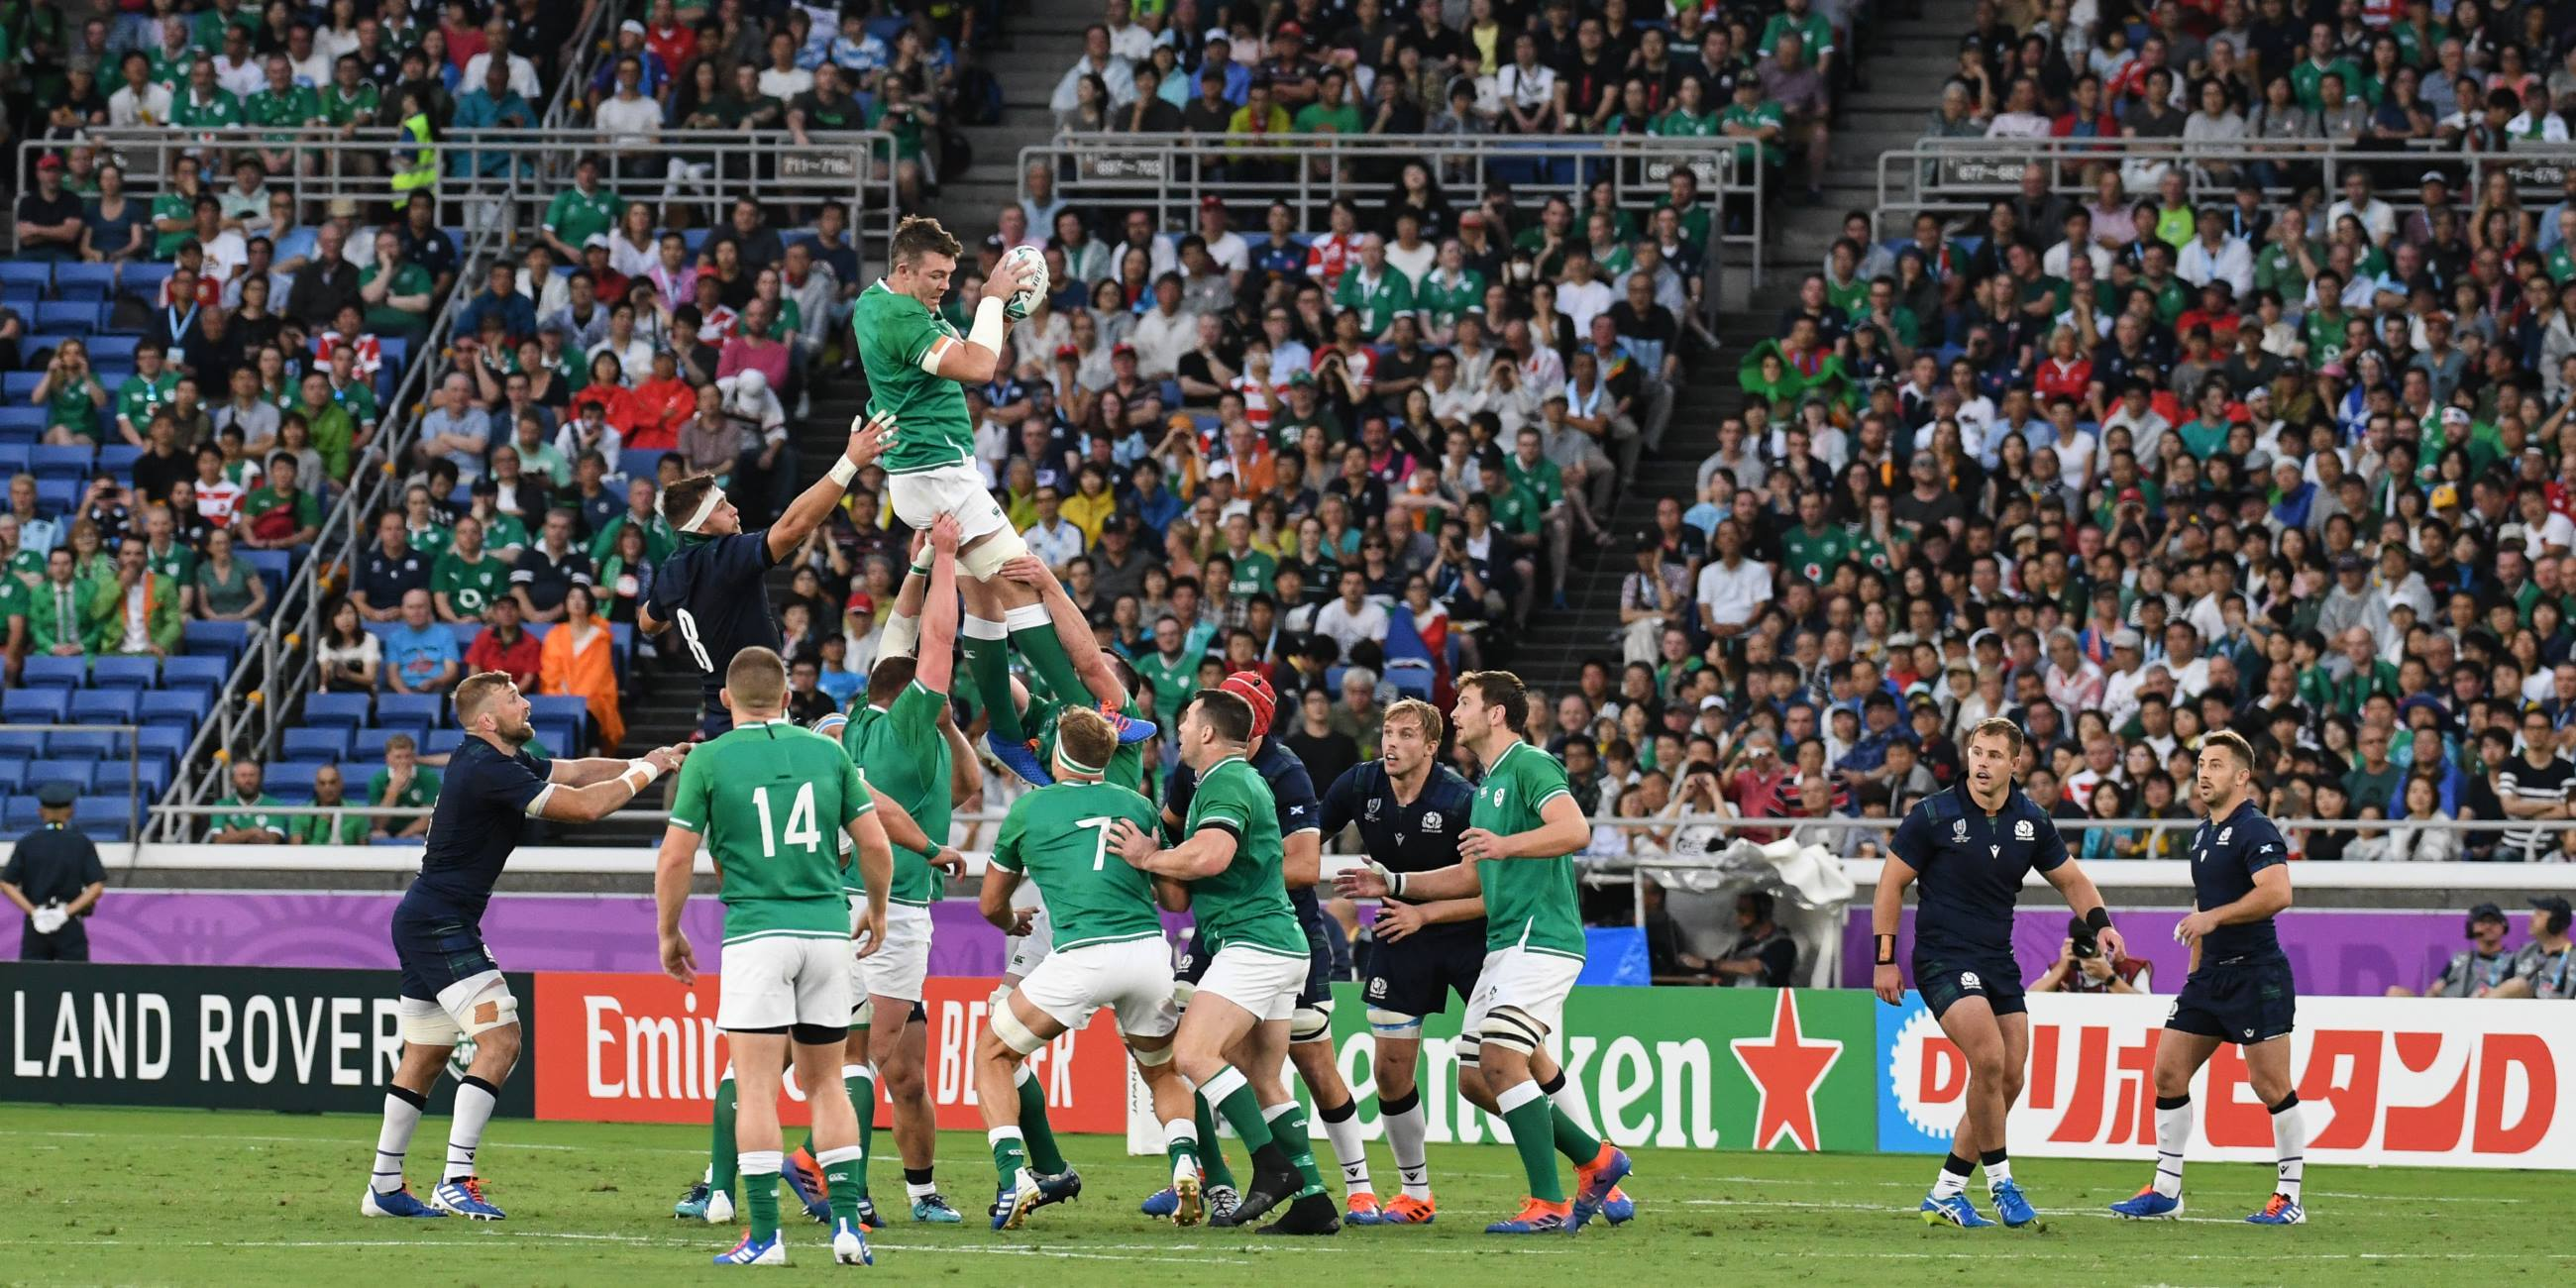 Ireland-rugby-players- jump-for-ball-trying-to- get-to-Rugby-World-Cup-Final – All Eyes on Yokohama